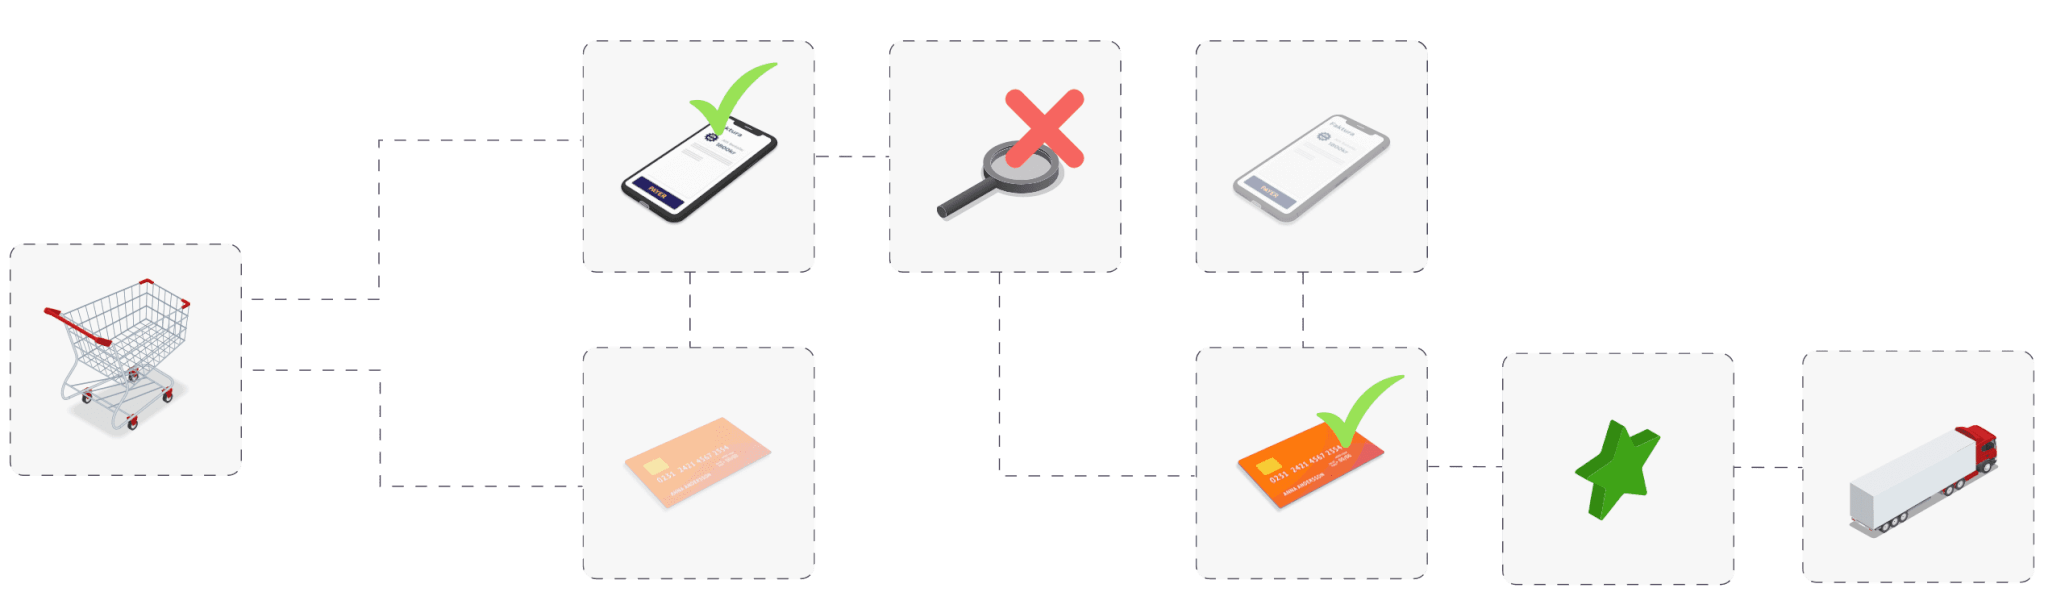 Credit score flow: Rejected invoice payment and offering card instead